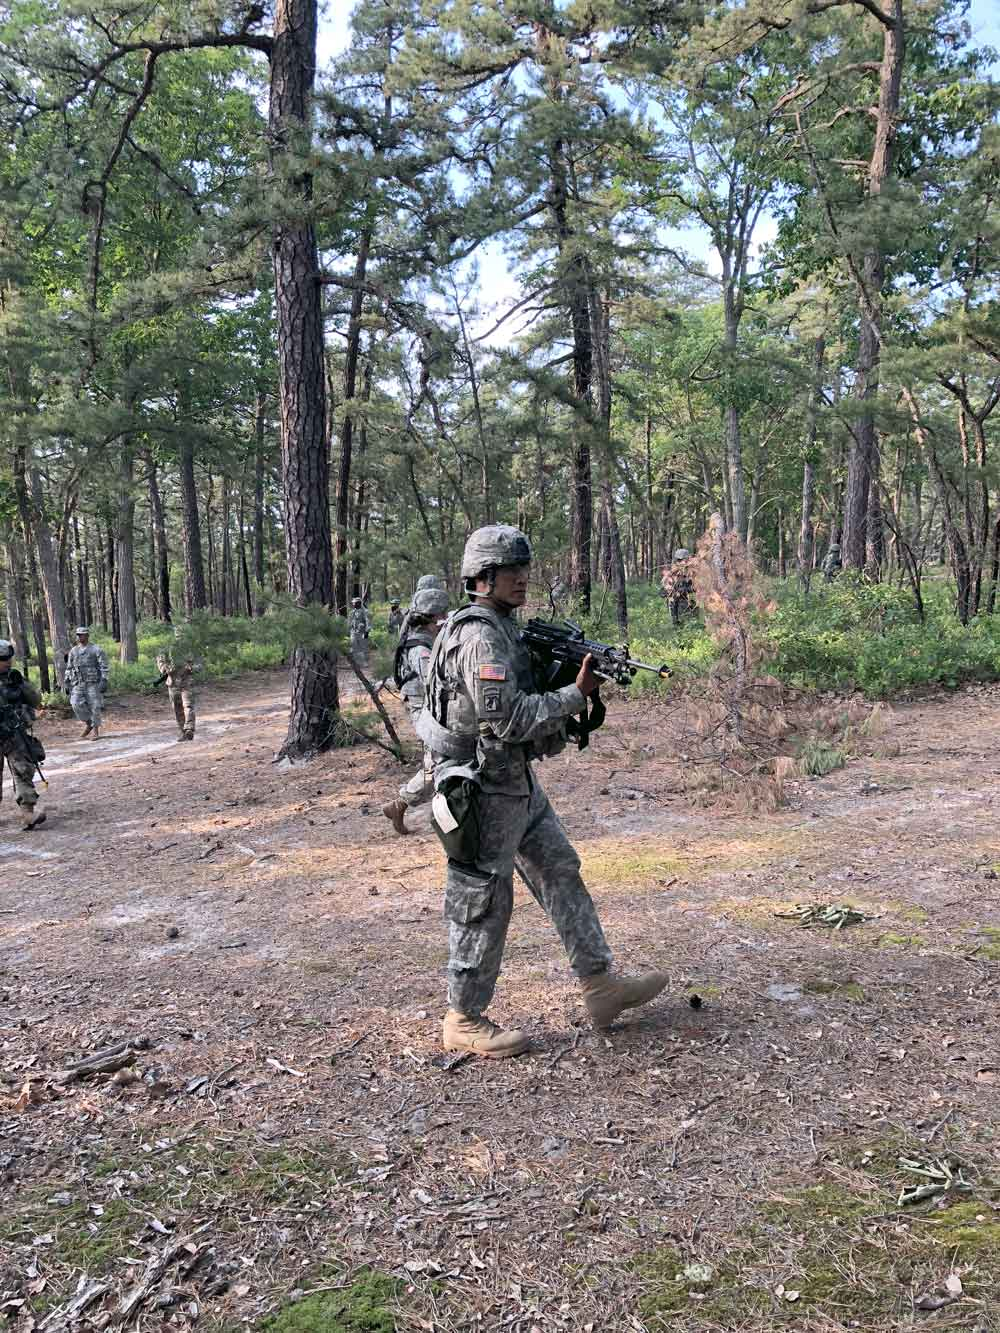 SFC John Vasquez conducts patrols during a dismounted situational training lane conducted as part of the 350th Financial Management Support Detachment's training at Joint Base McGuire-Dix-Lakehurst.